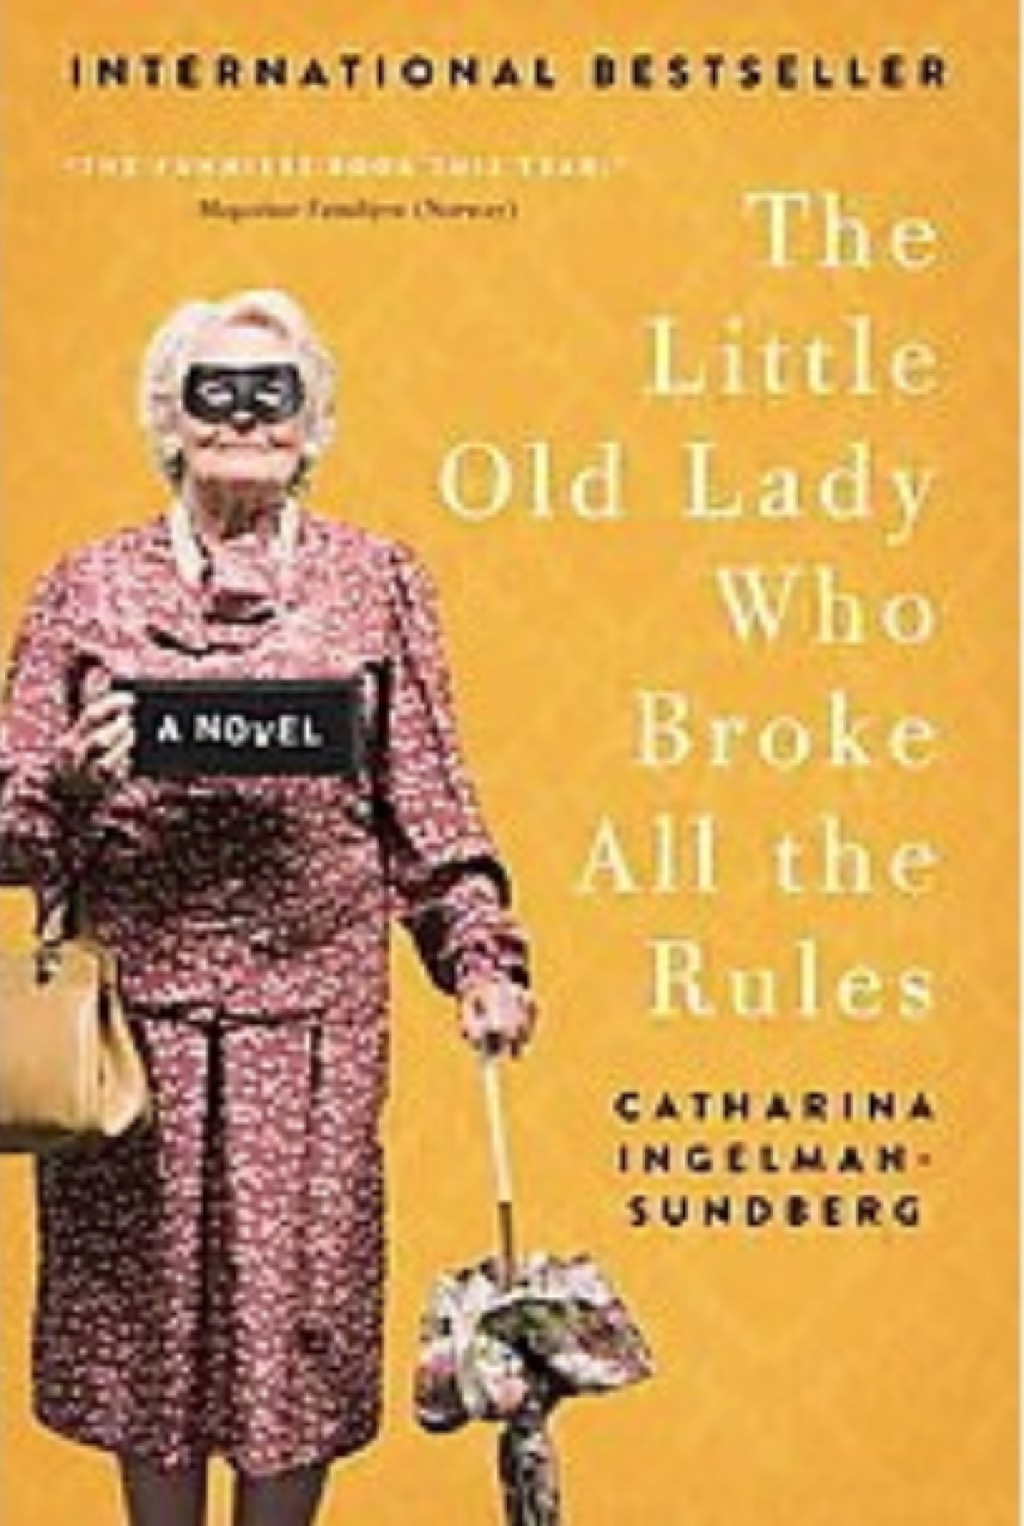 The Little Old Lady Who Broke All The Rules by Catherina Ingelman-Sunderberg